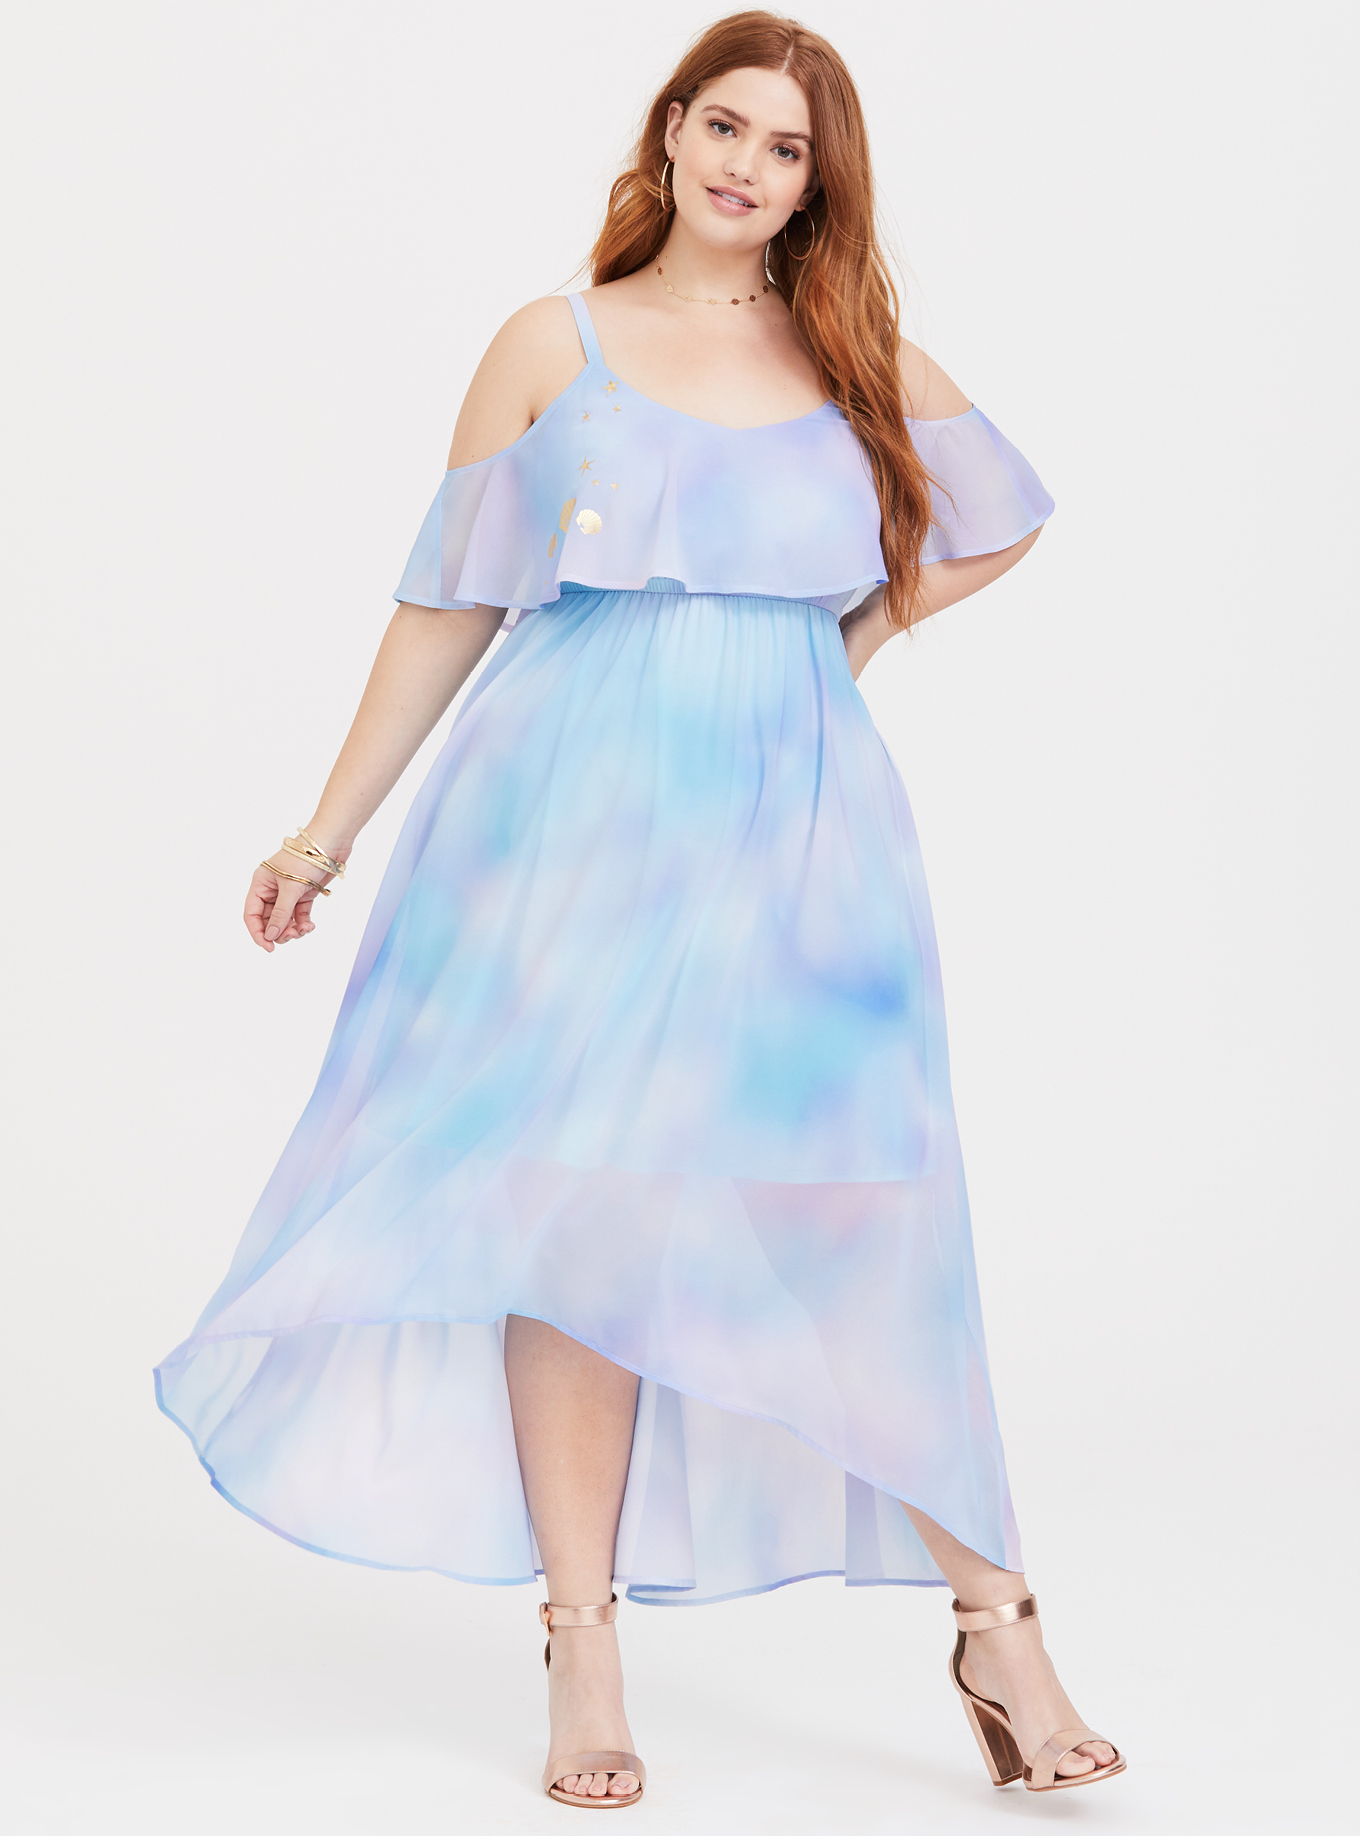 c2658f54585 Torrid Launches The Little Mermaid Plus Size Clothing Collection ...